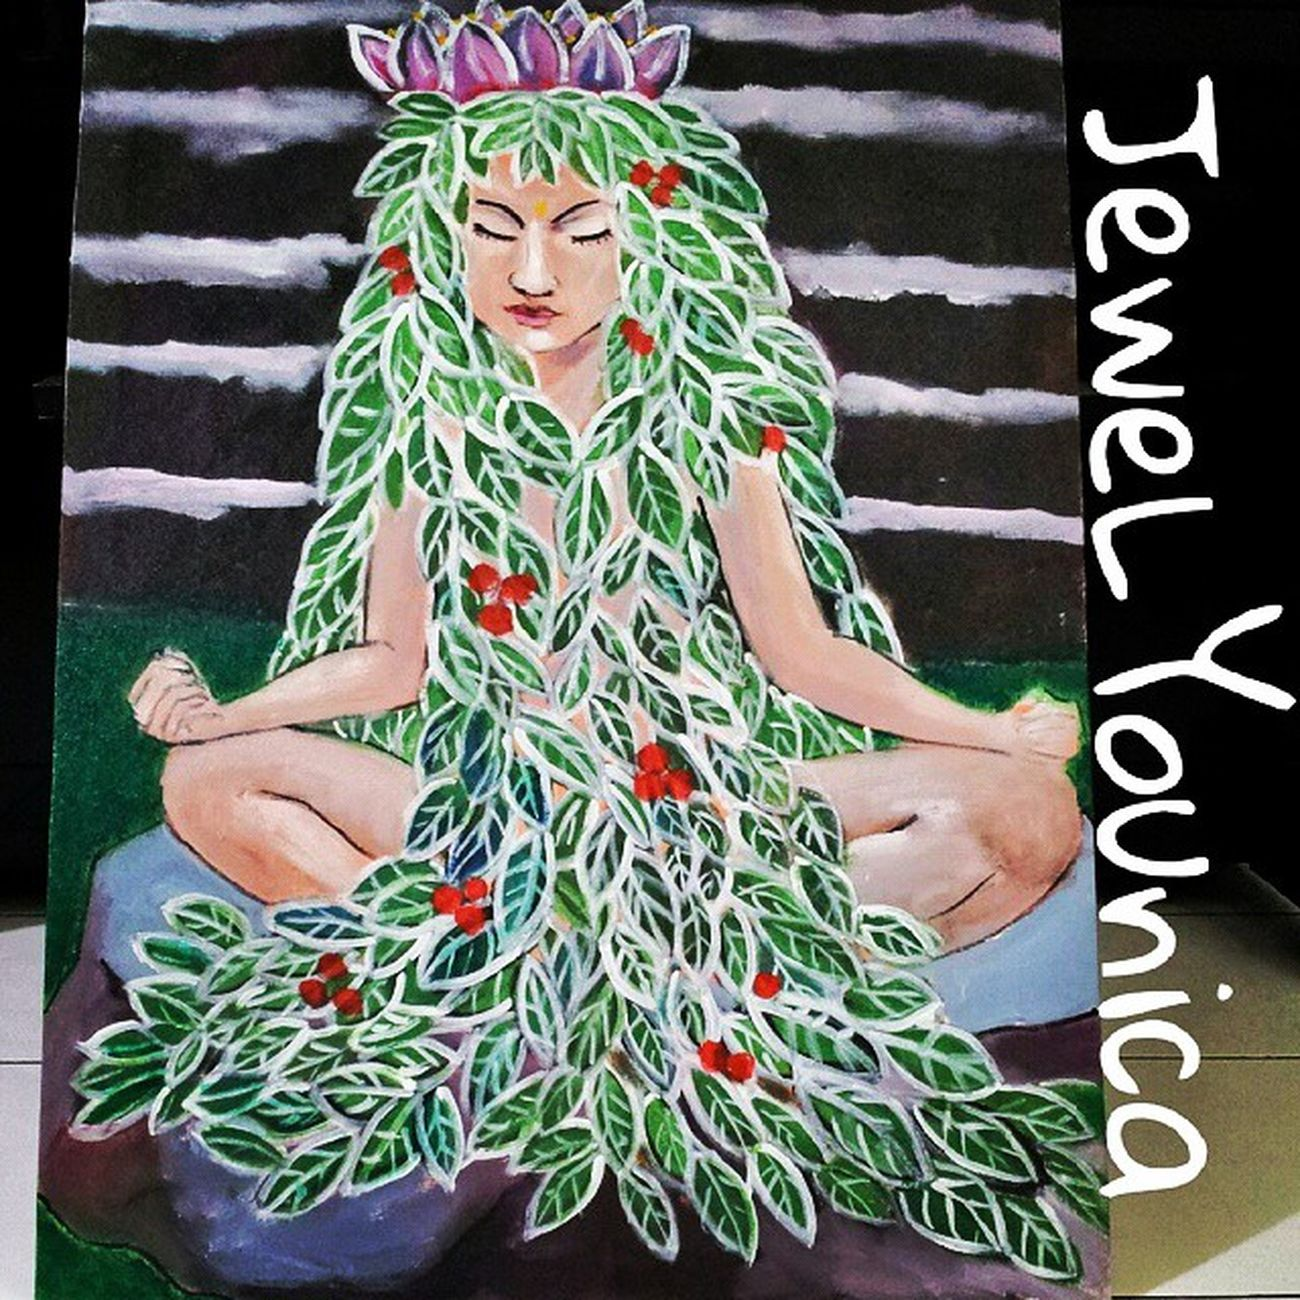 Finished! But still need Final Touched! ;) NaTuRaL NaMaSTe GiRL ;) ♥ Art ArtWork Artist Artists Contemporaryart Contemporary Paint Painting Painter WorkOfArt Followart Lotus Flowers Flower Girl Natural Namaste Meditation Yoga Namastegirl Nature Leaf Acrylic Acrylics Acrylicpainting  instaart instaartist large largepainting 80 x 60 cm. For sale